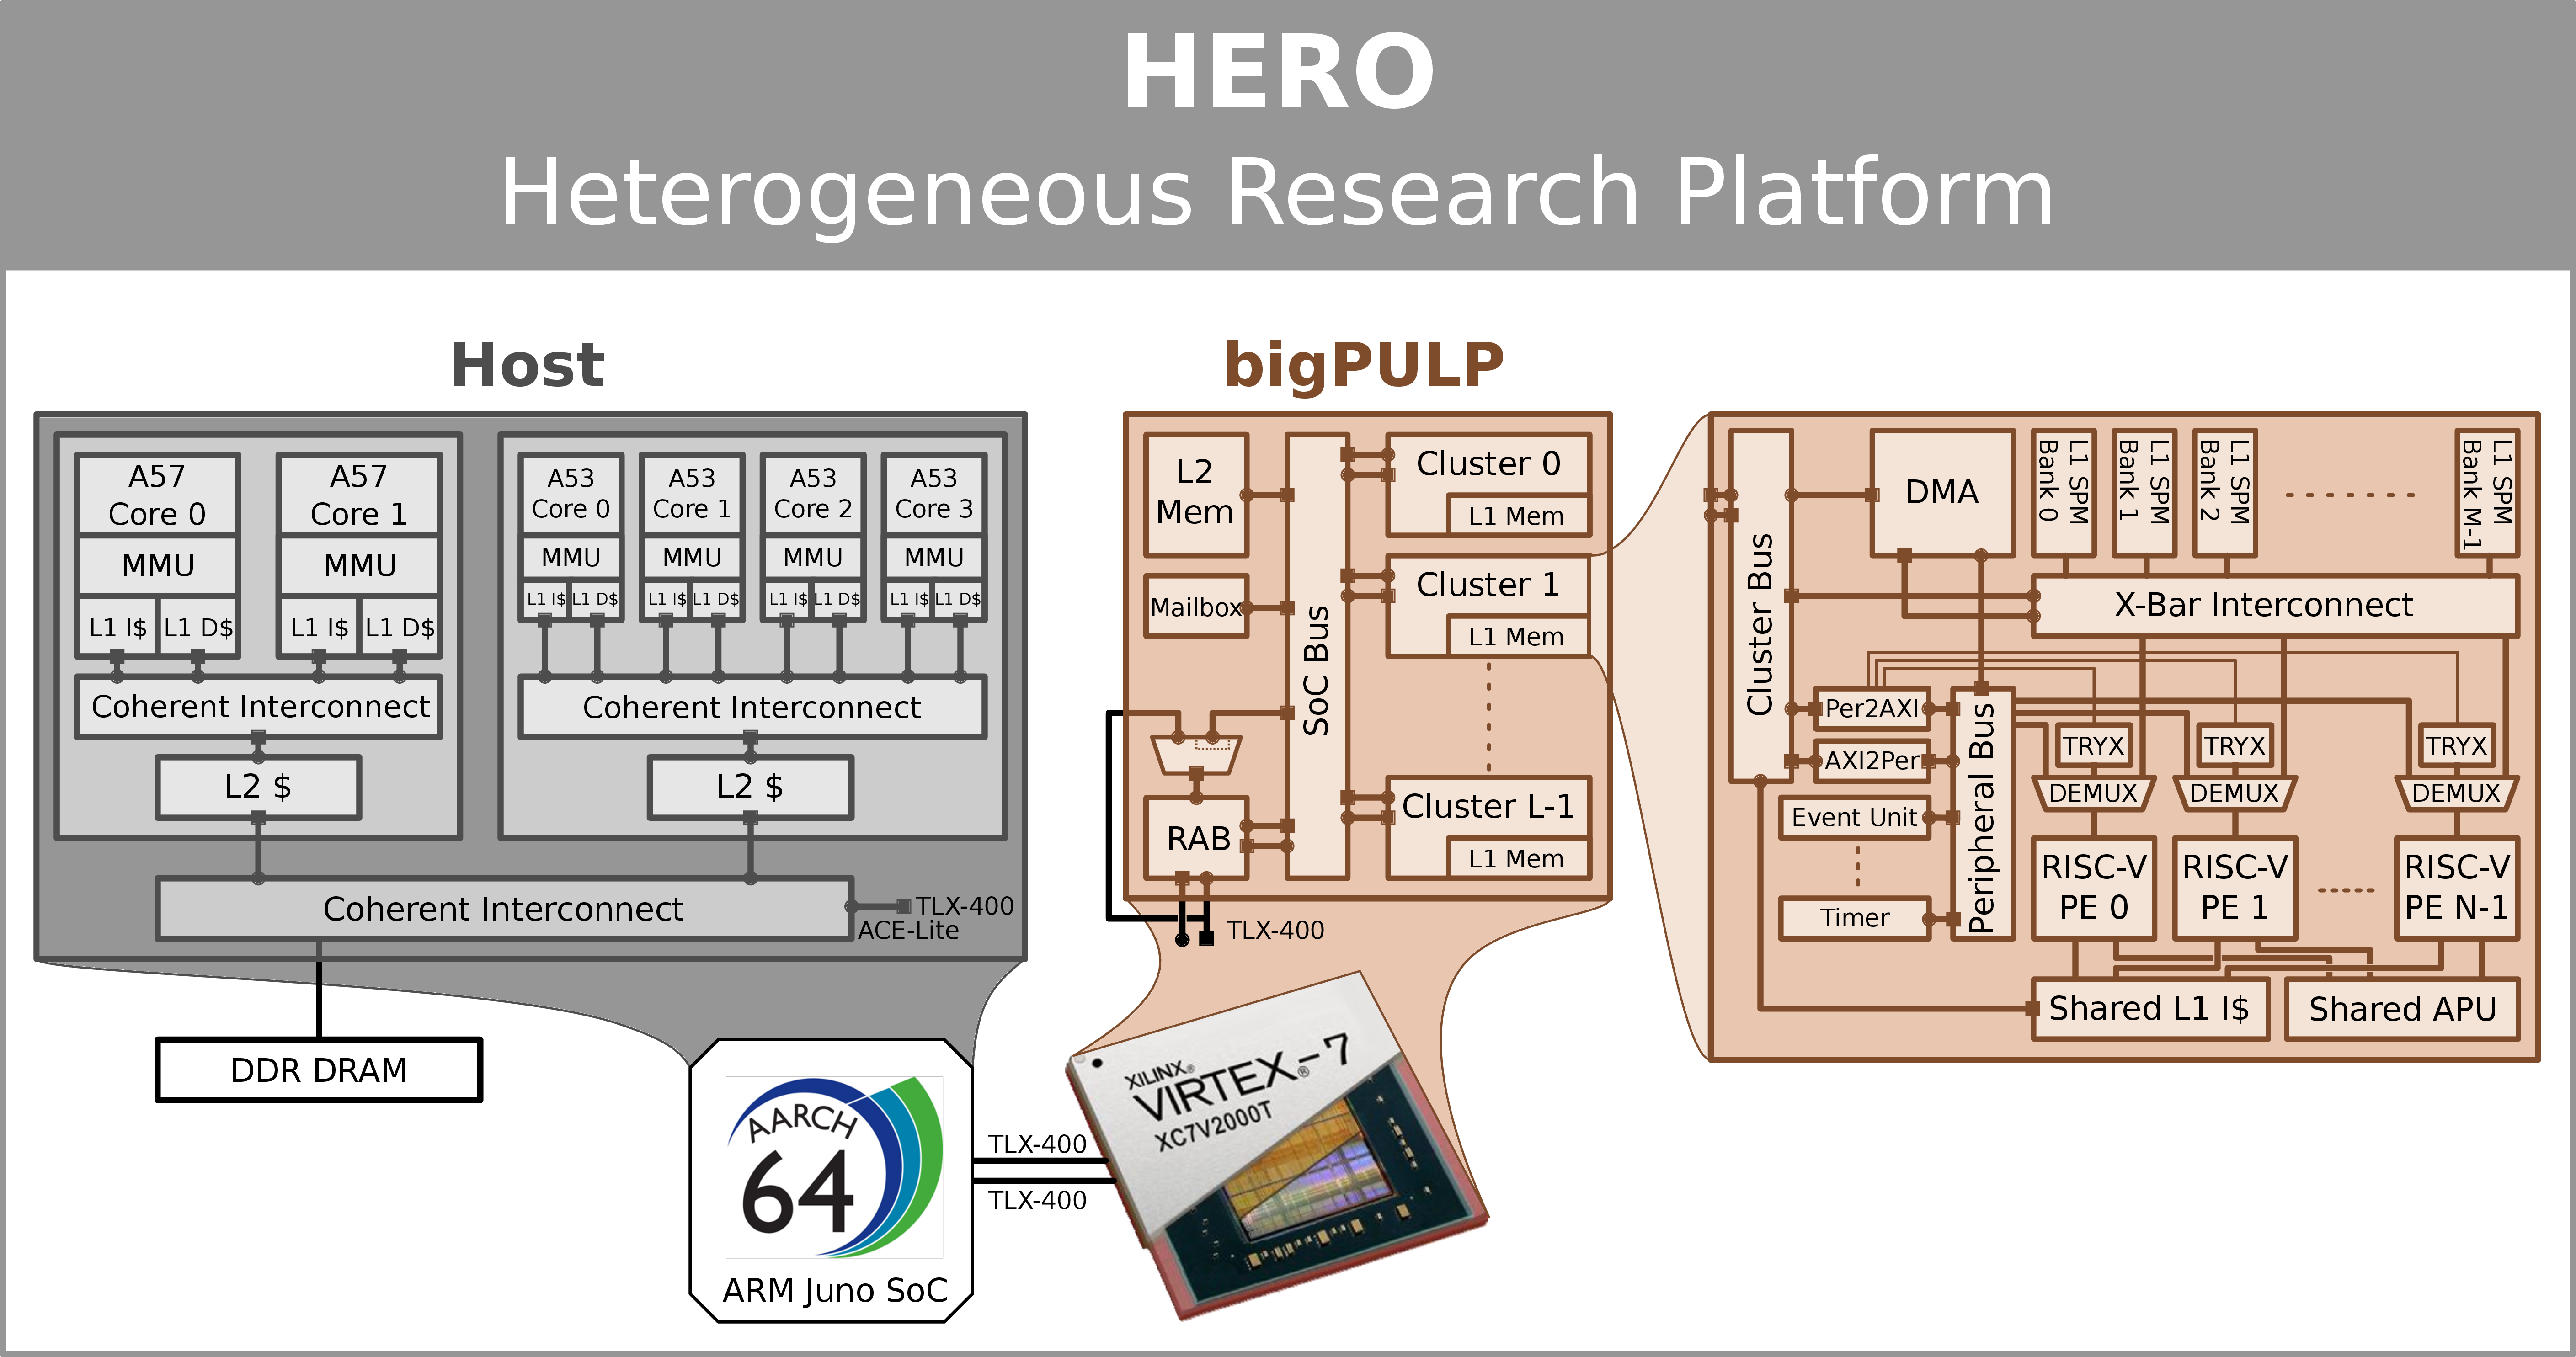 HERO hardware overview with bigPULP implemented on FPGA